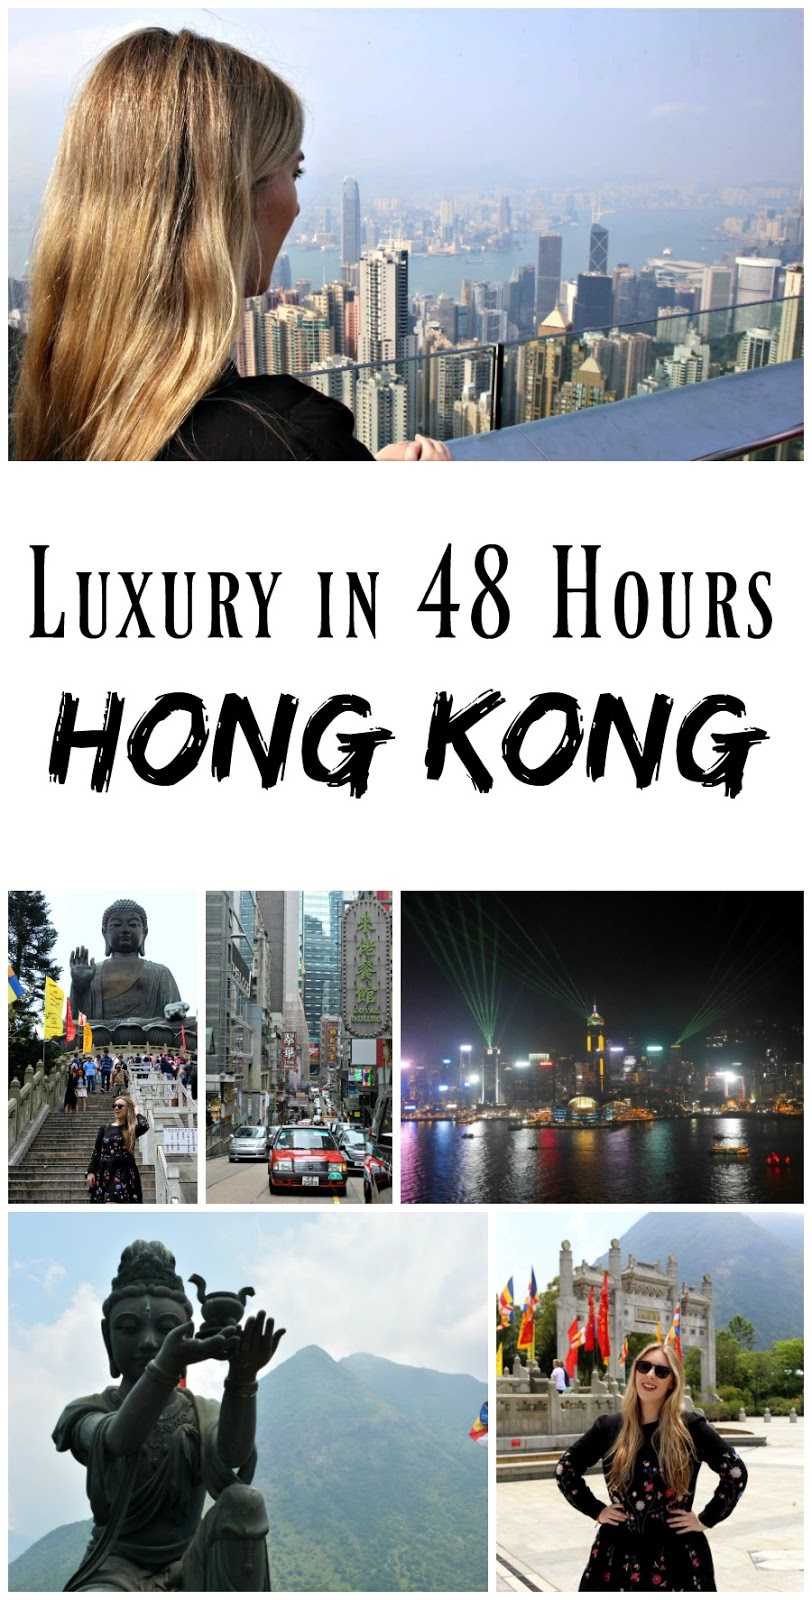 PIN FOR LATER: How to spend 48 hours in Hong Kong! Includes Tian Tan Buddha, Lantau Island, Victoria Peak, and Star Ferry, as well as the best bars and restaurants to try out!